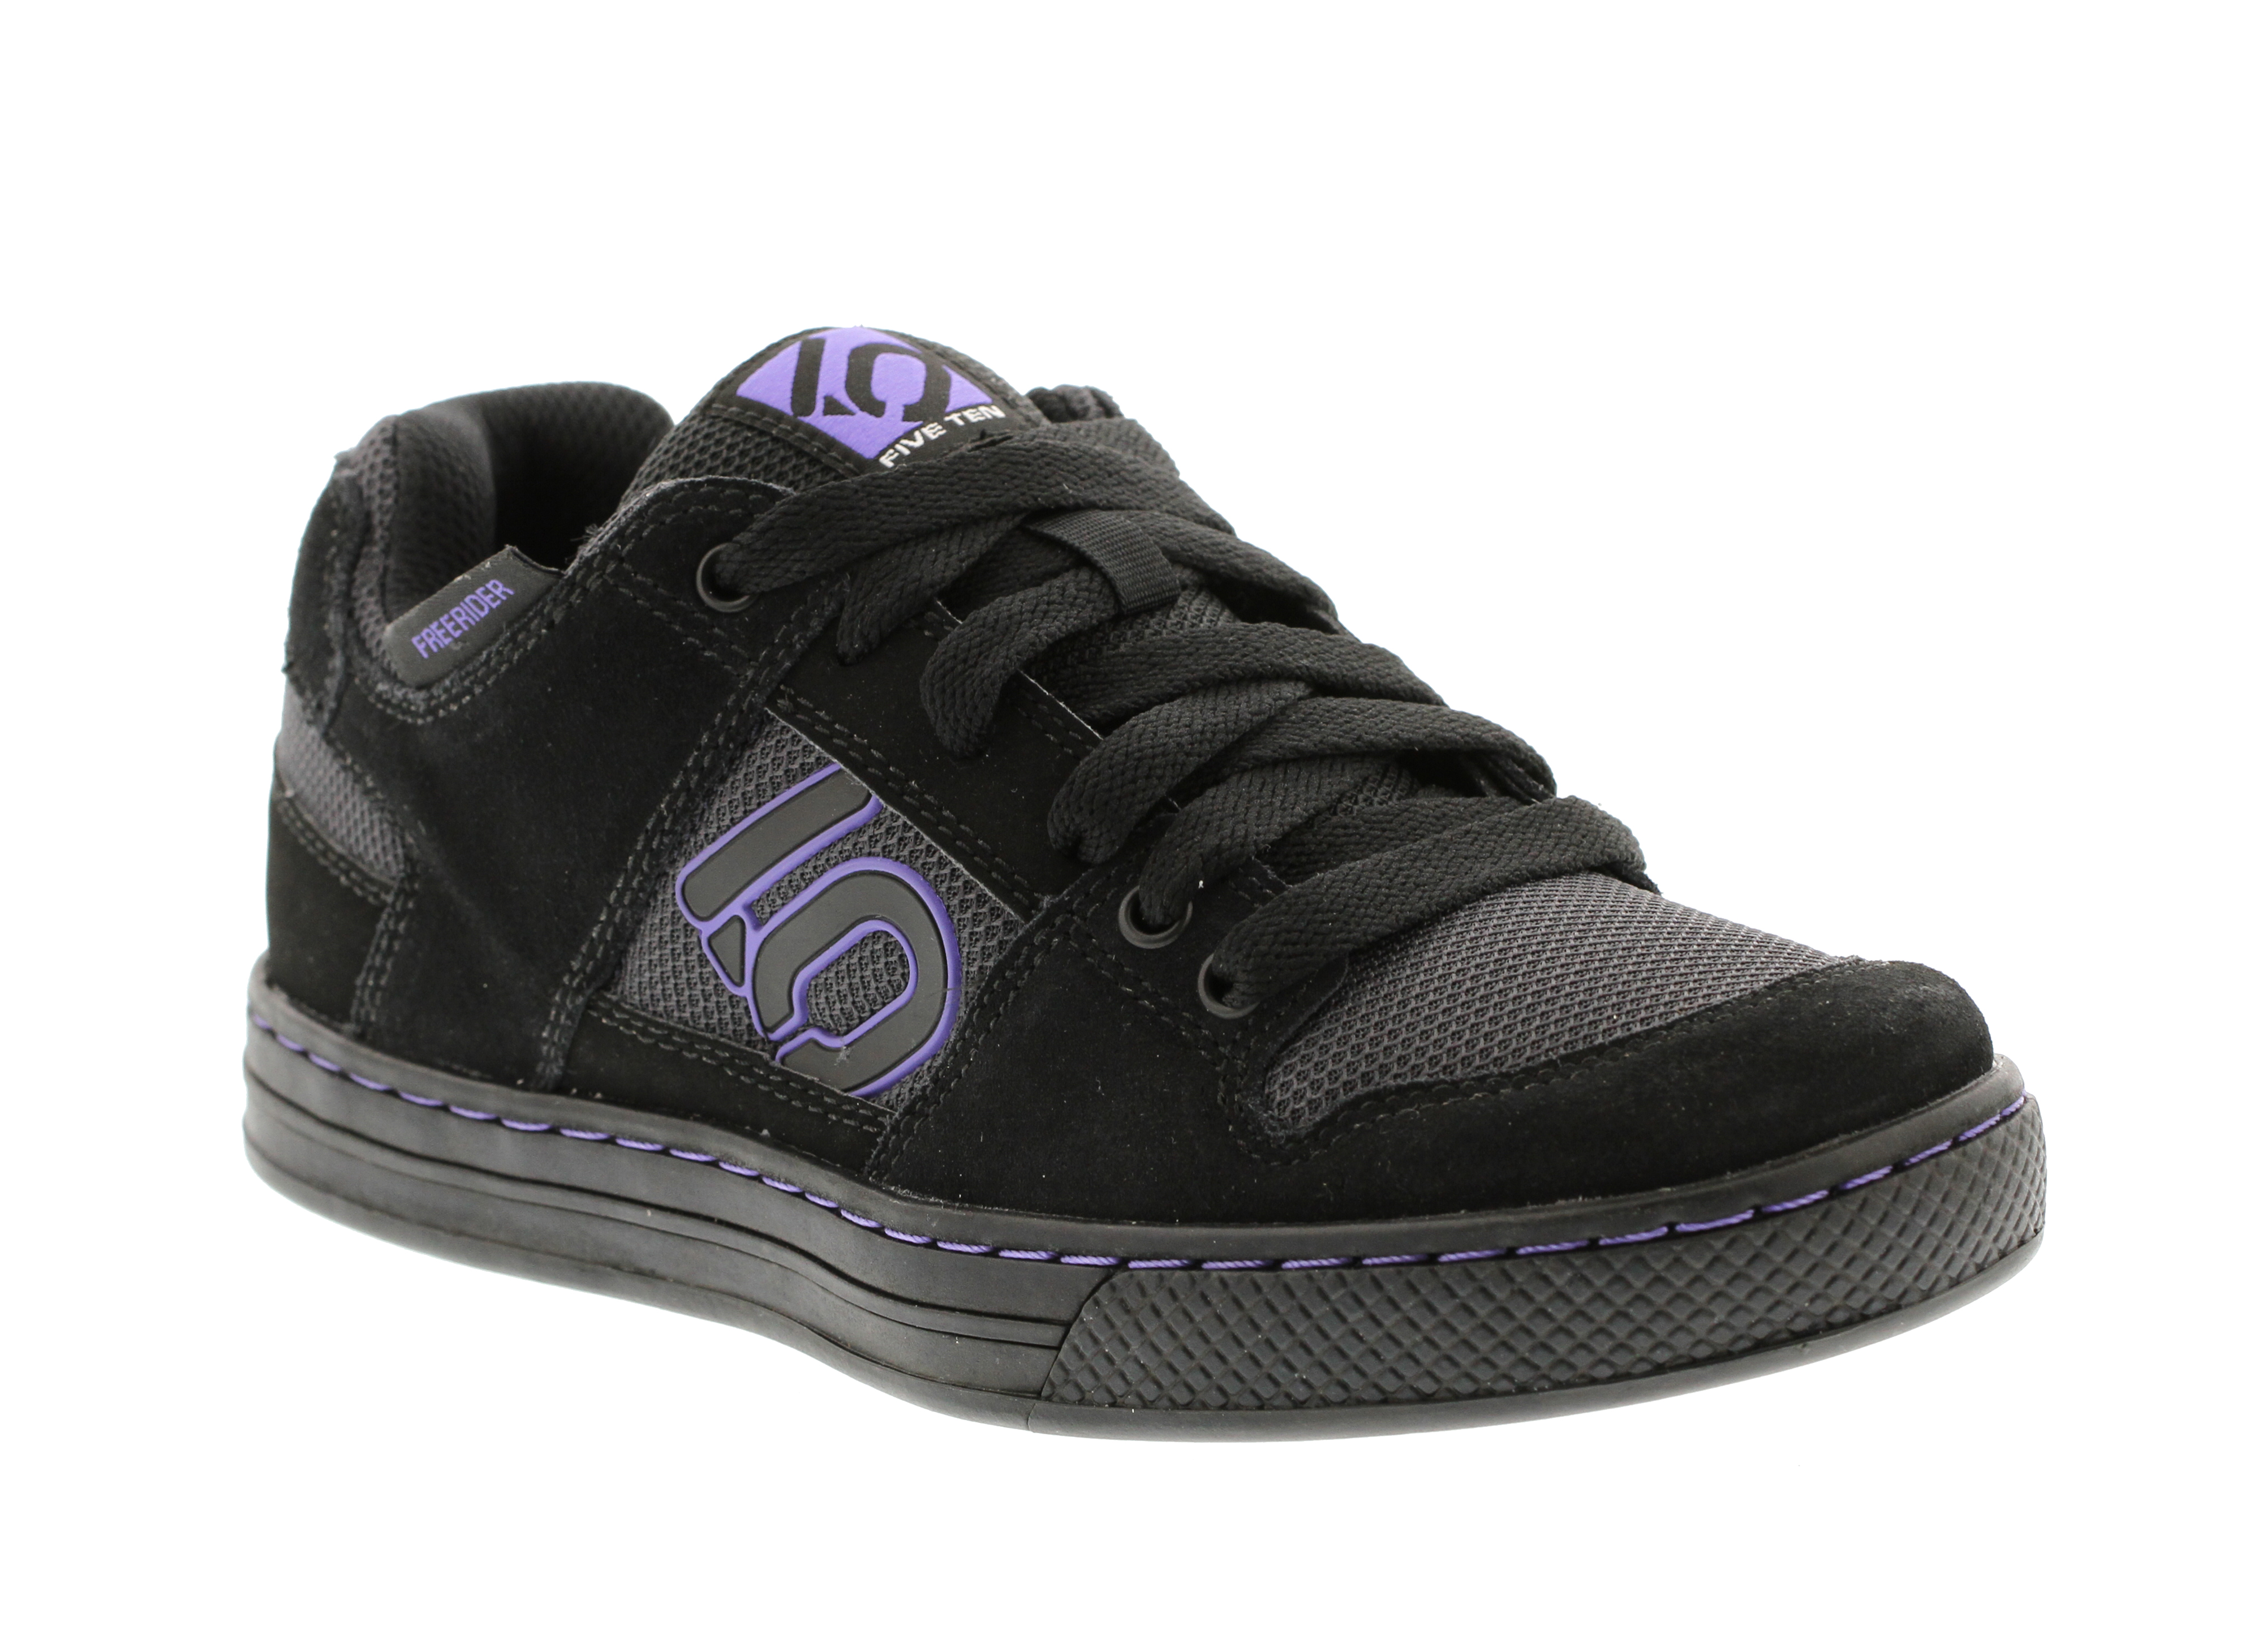 durable in use performance sportswear best quality Cheap new balance safety shoes Buy Online >OFF50% Discounted